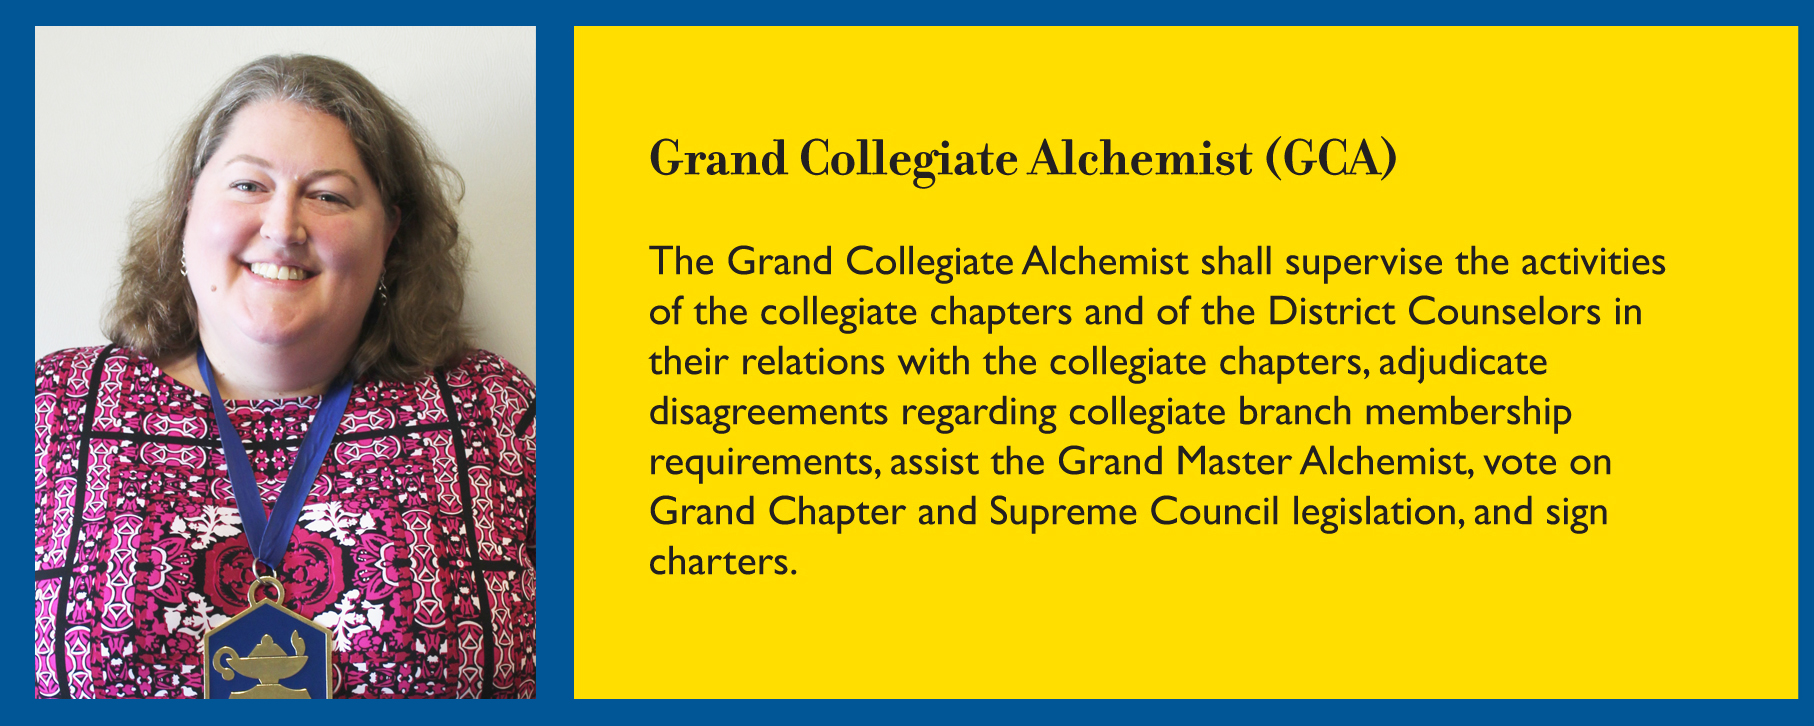 Grand Collegiate Alchemist